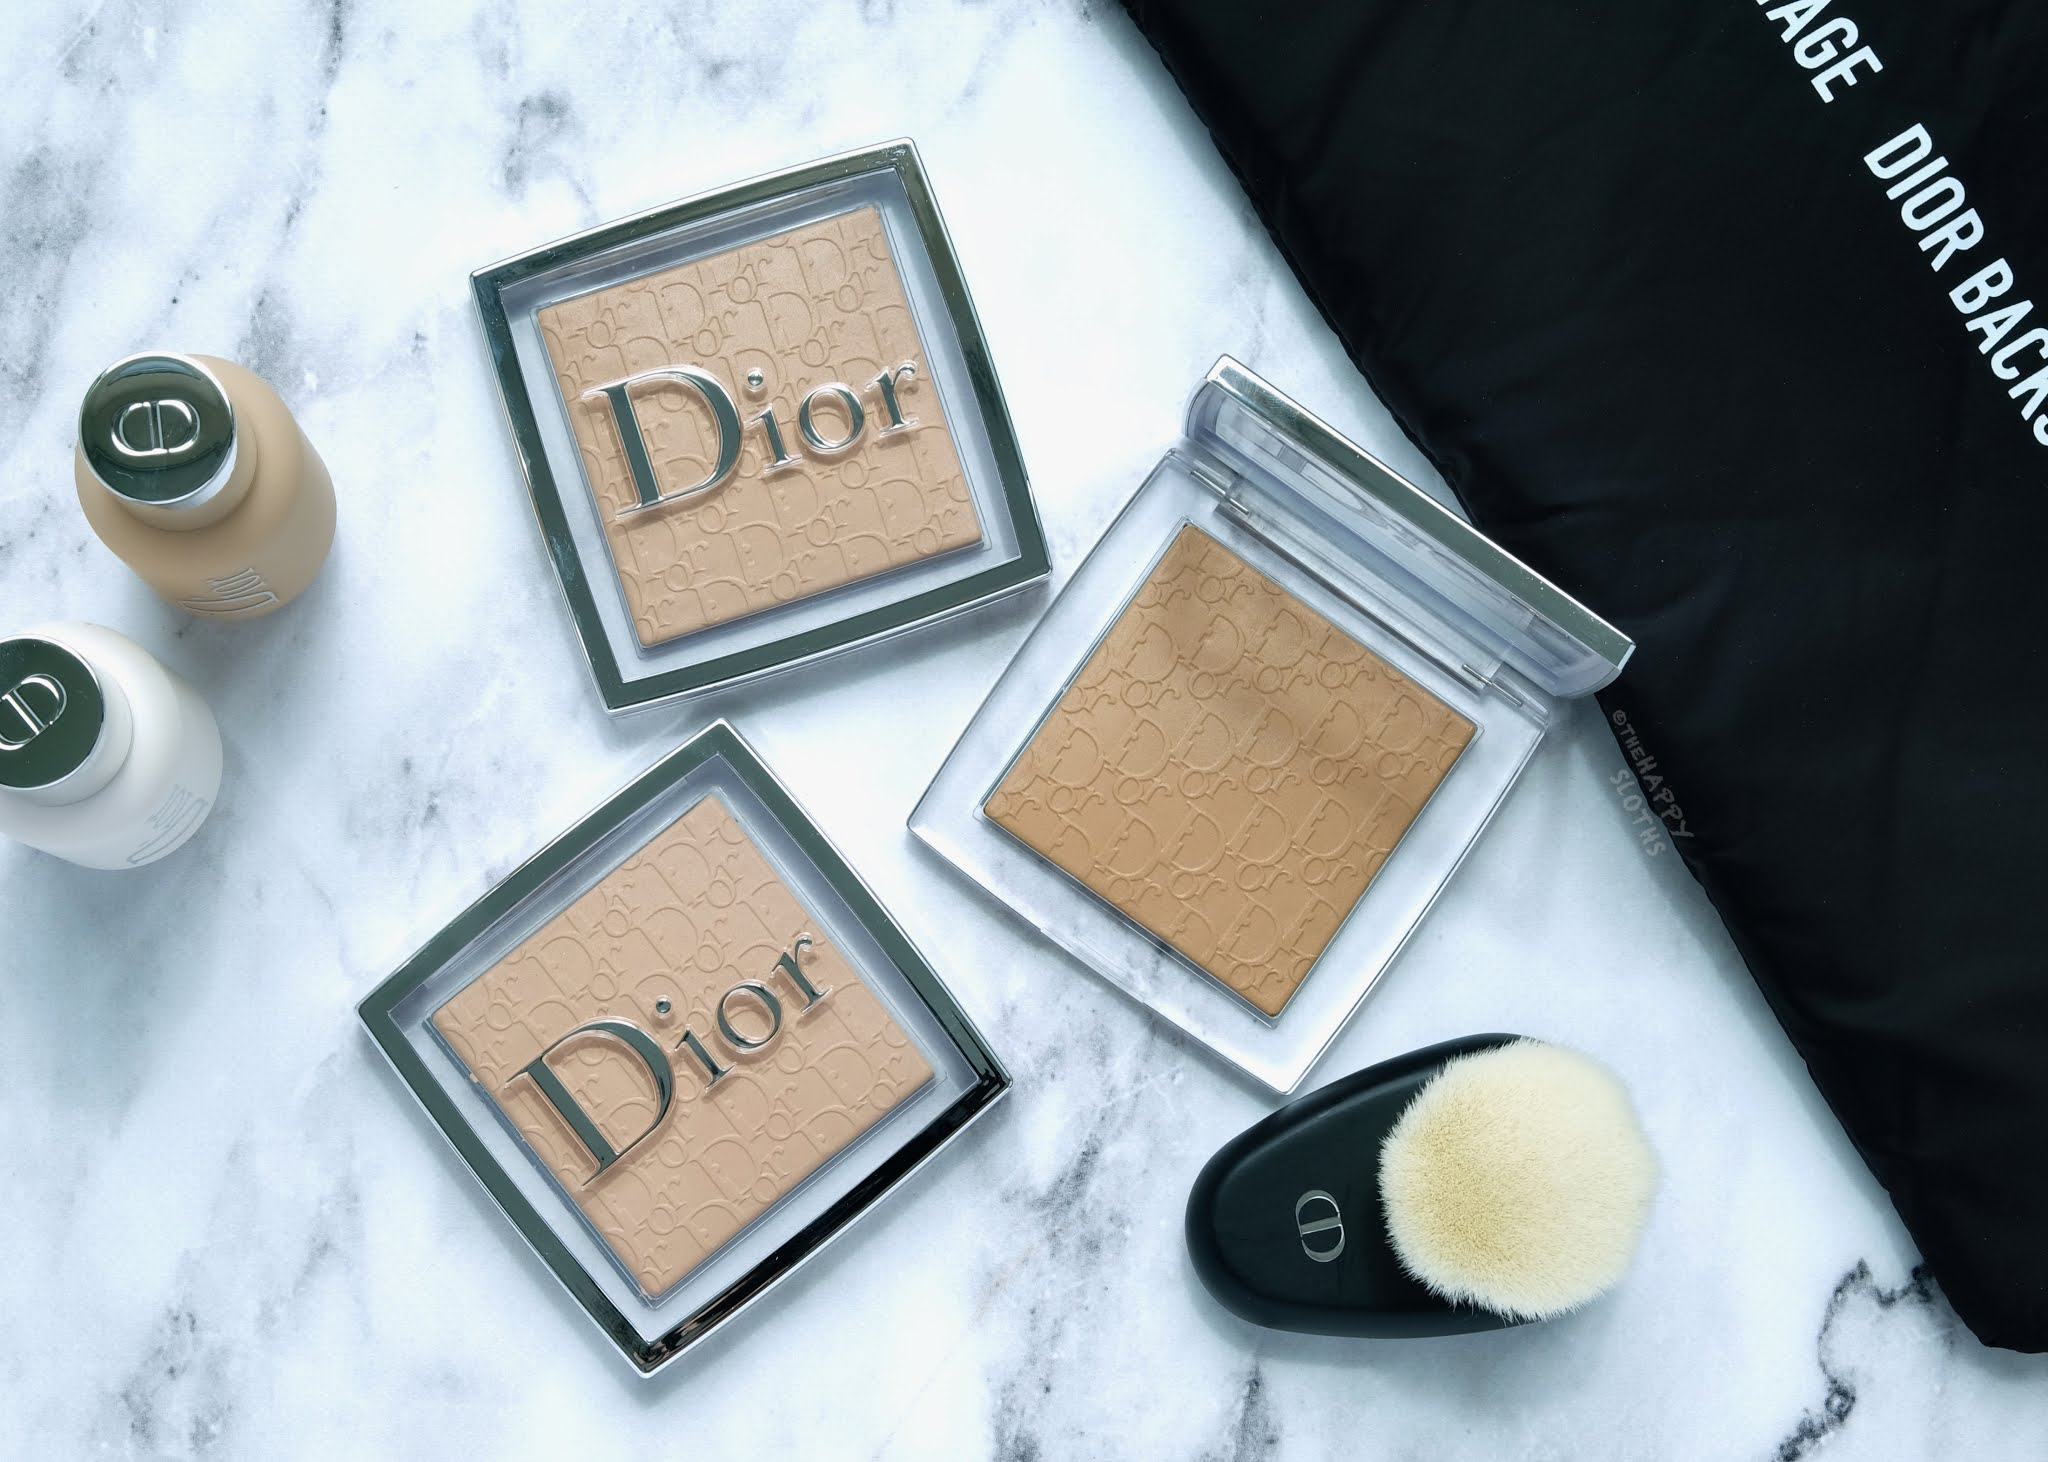 Dior | Backstage Face & Body Powder-No-Powder Perfecting Translucent Powder: Review and Swatches